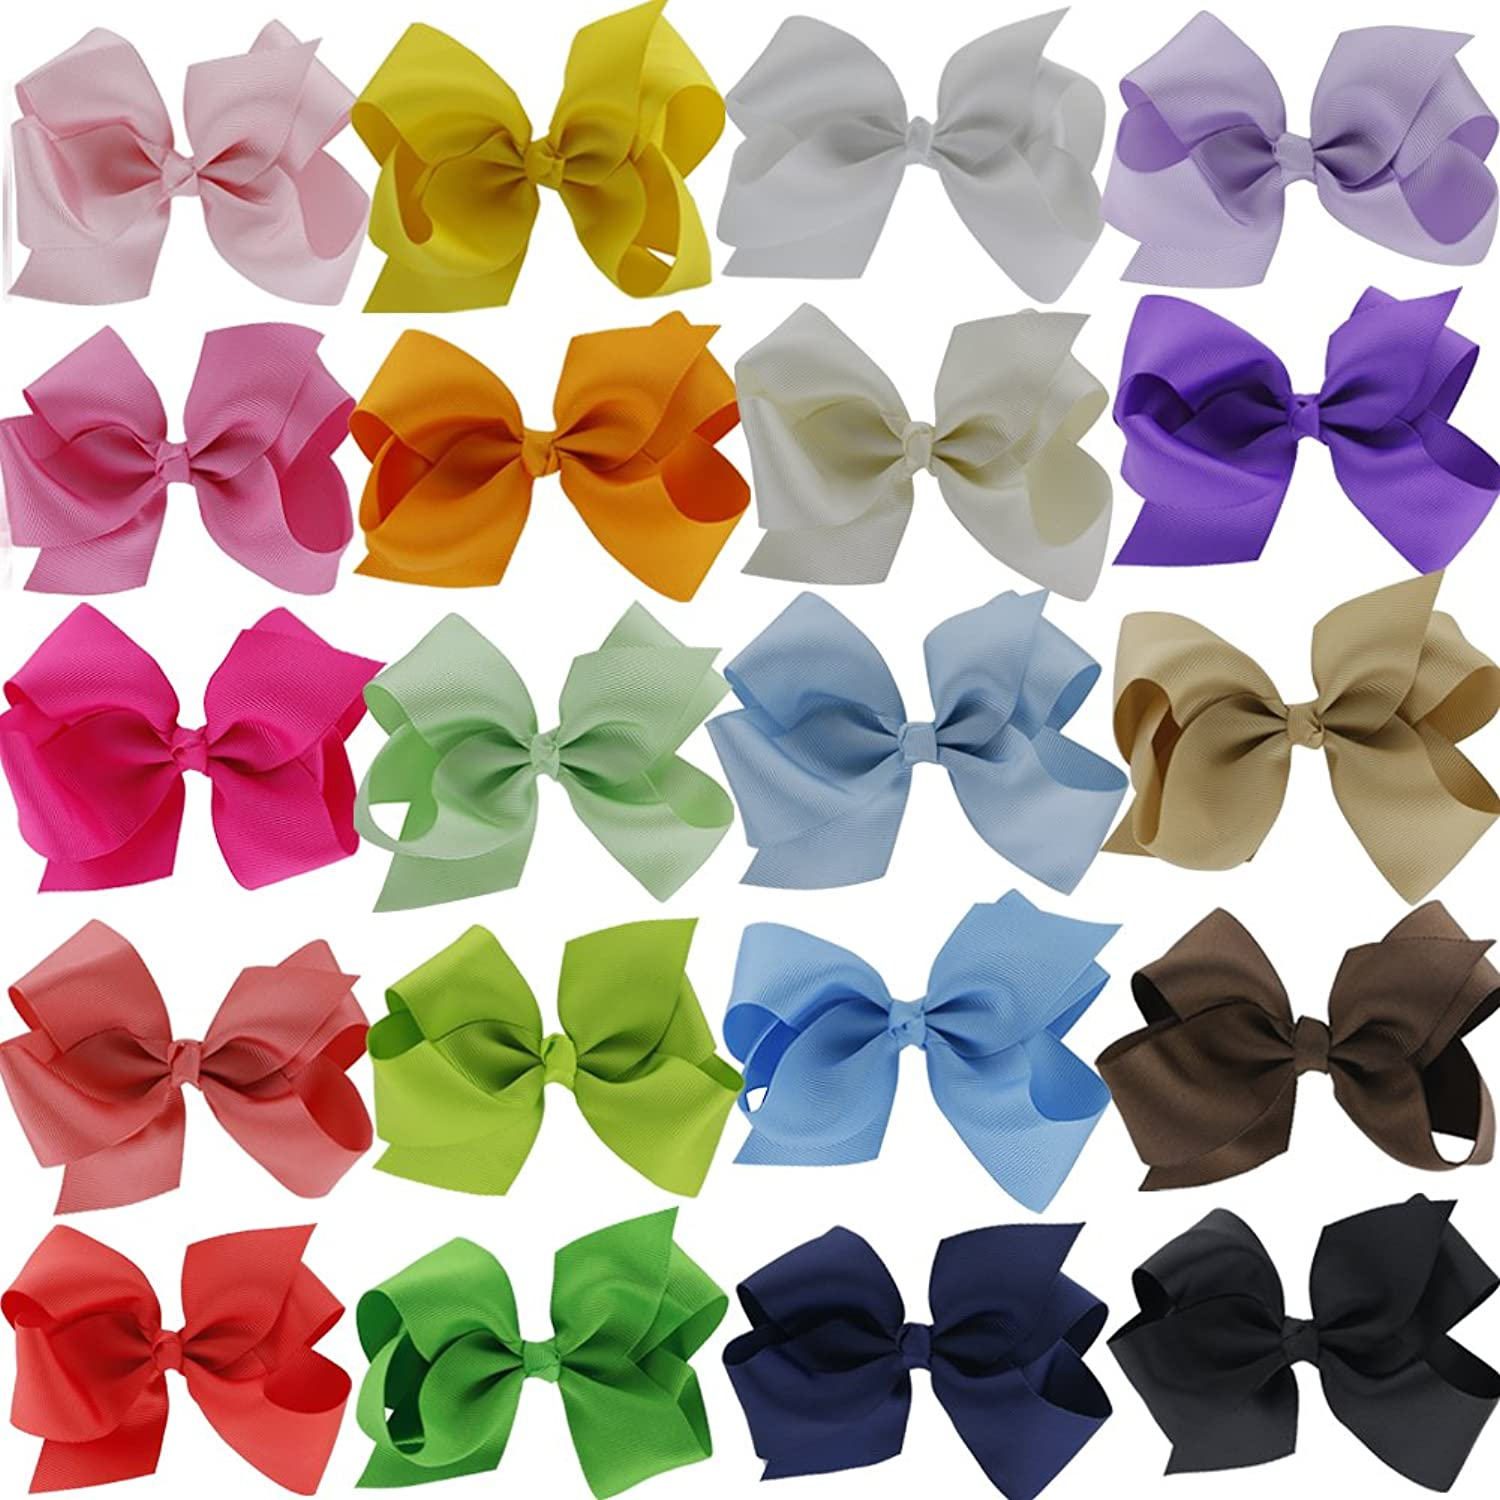 "QingHan 4.5"" Hair Bow Clips Grosgrain Ribbon Boutique Bows for Girls Babies Teens Kids Toddlers Pack of 20"